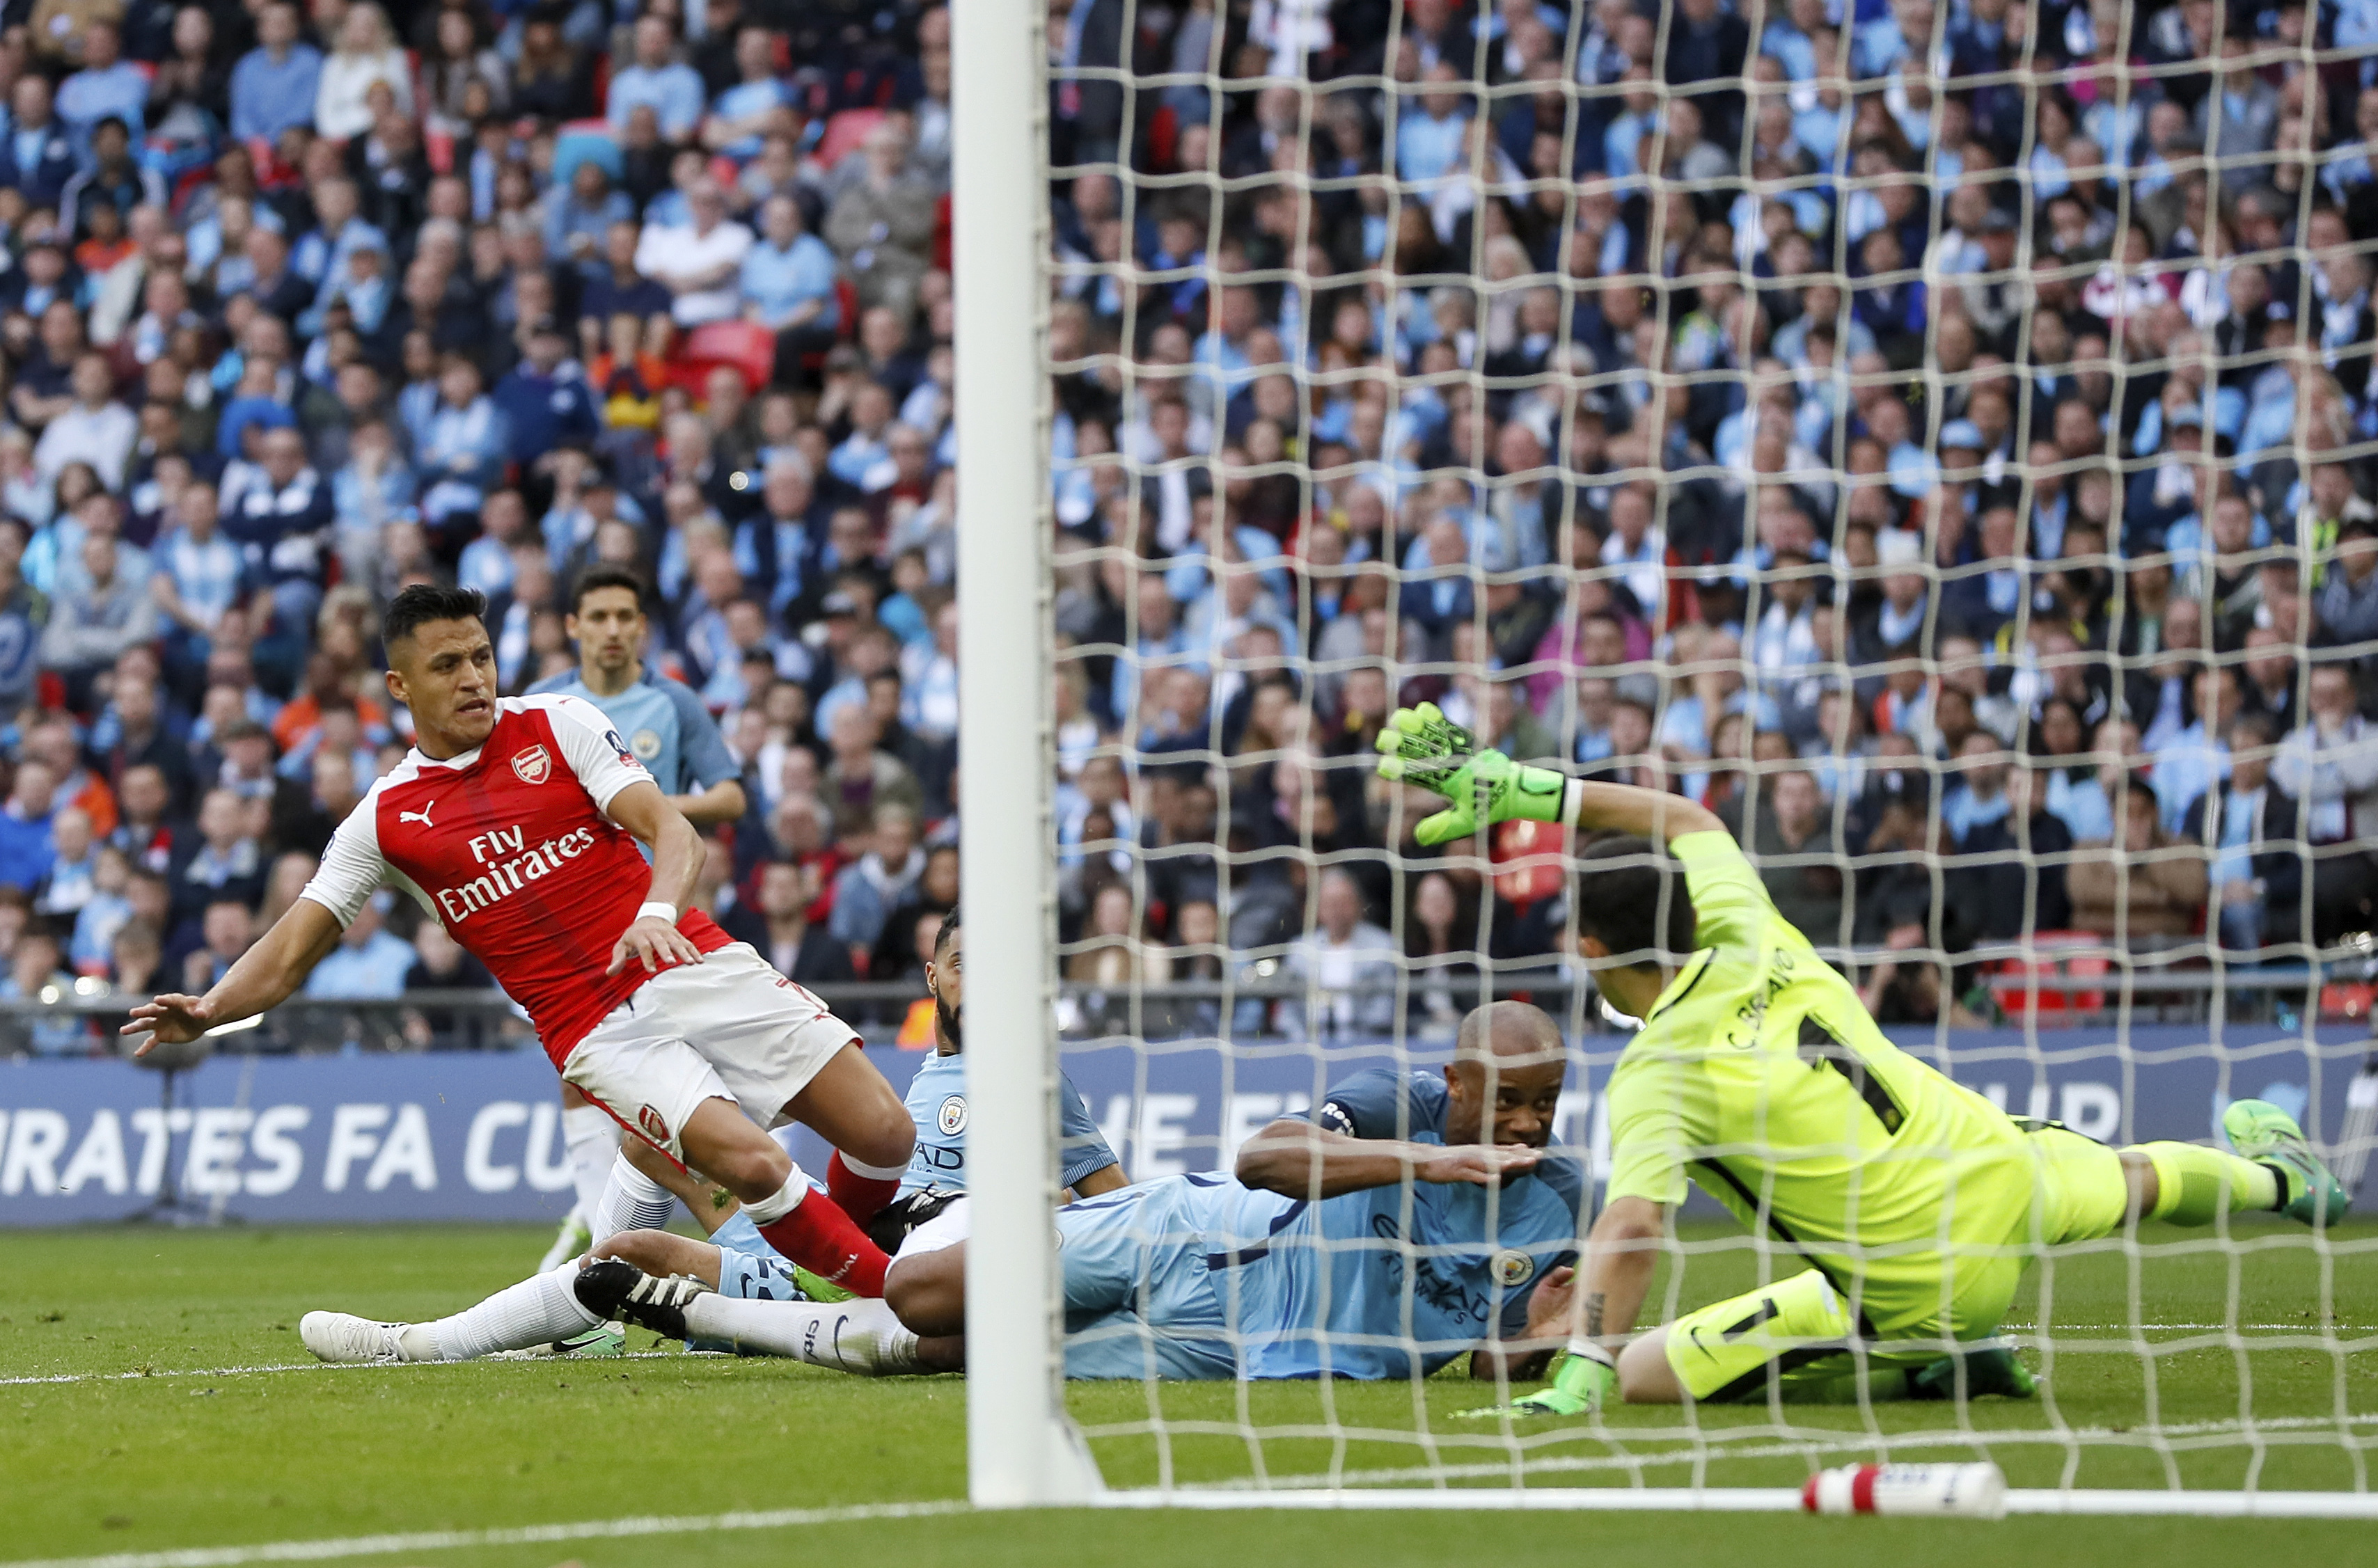 Arsenal's Alexis Sanchez, left, scores his side's second goal past Manchester City goalkeeper Claudio Bravo, right, during their English FA Cup semifinal at Wembley stadium in London, Sunday, April 23. (AP Photo/Kirsty Wigglesworth)